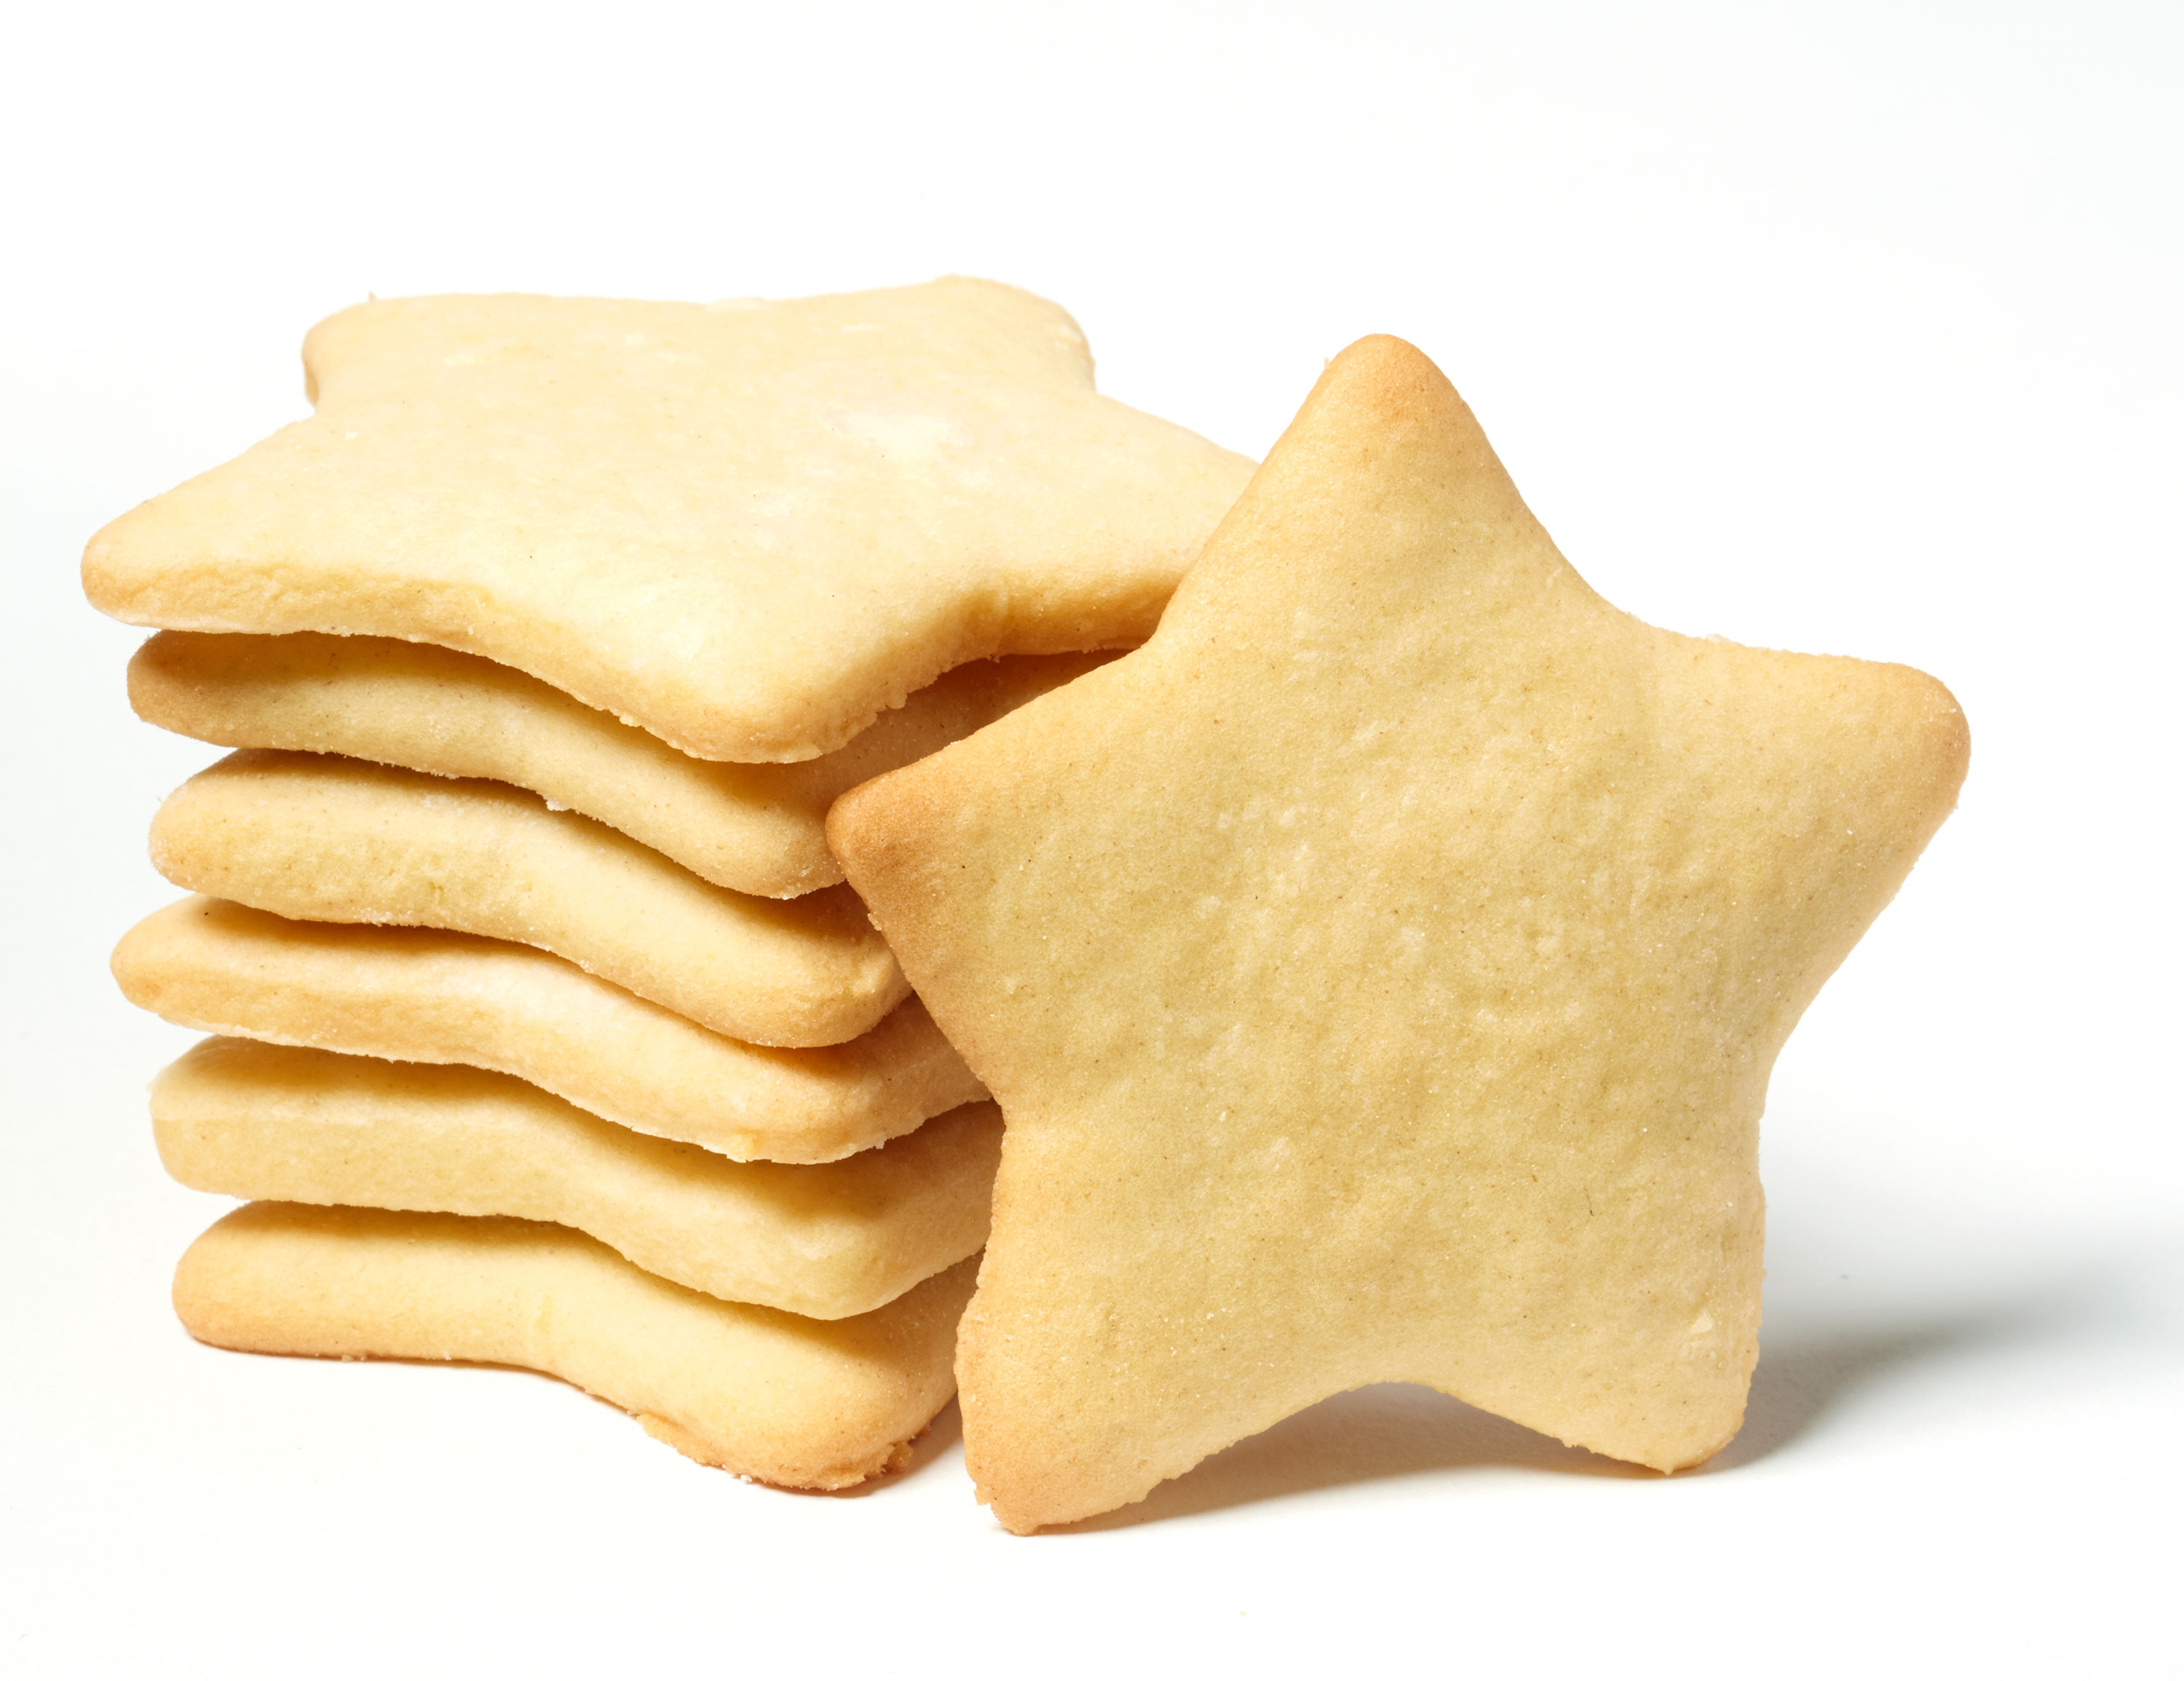 Melania Trump's Star Cookies